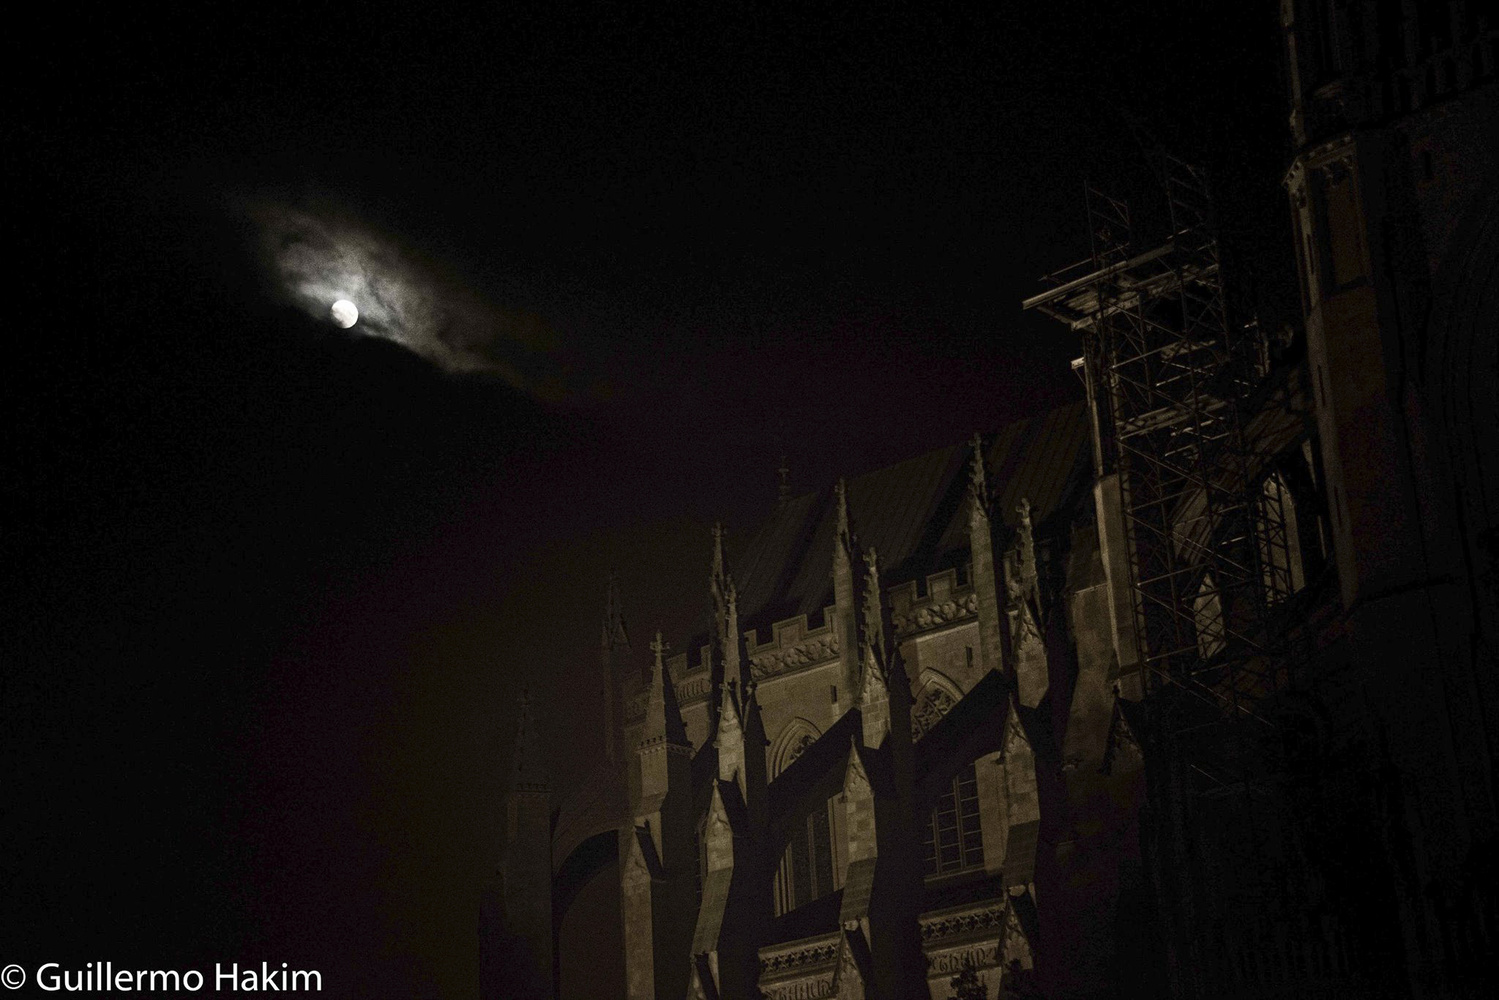 Moon over the National Cathedral by Guillermo Hakim